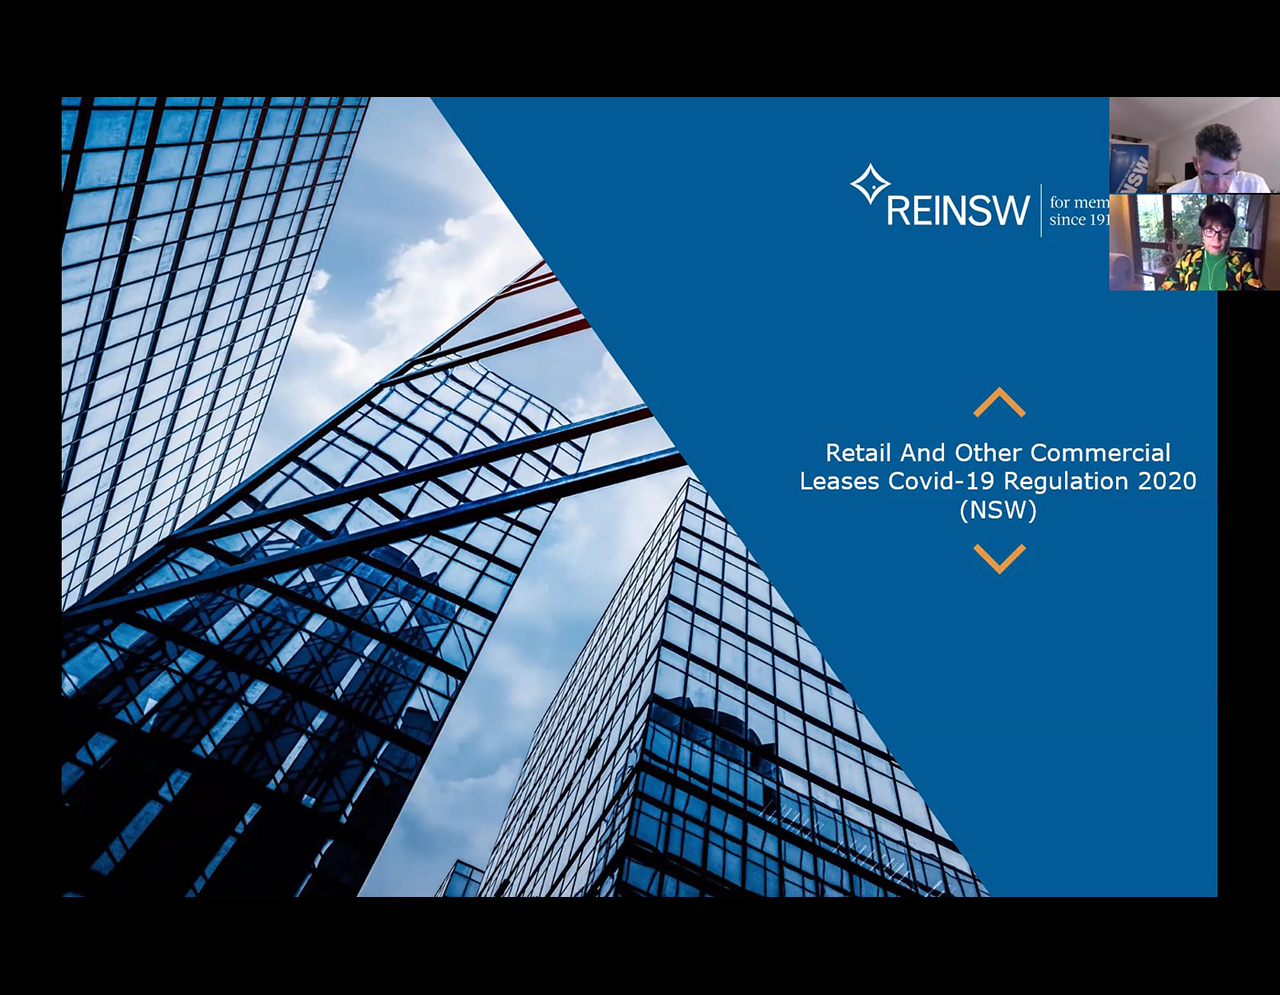 Retail And Other Commercial Leases Covid-19 Regulation 2020